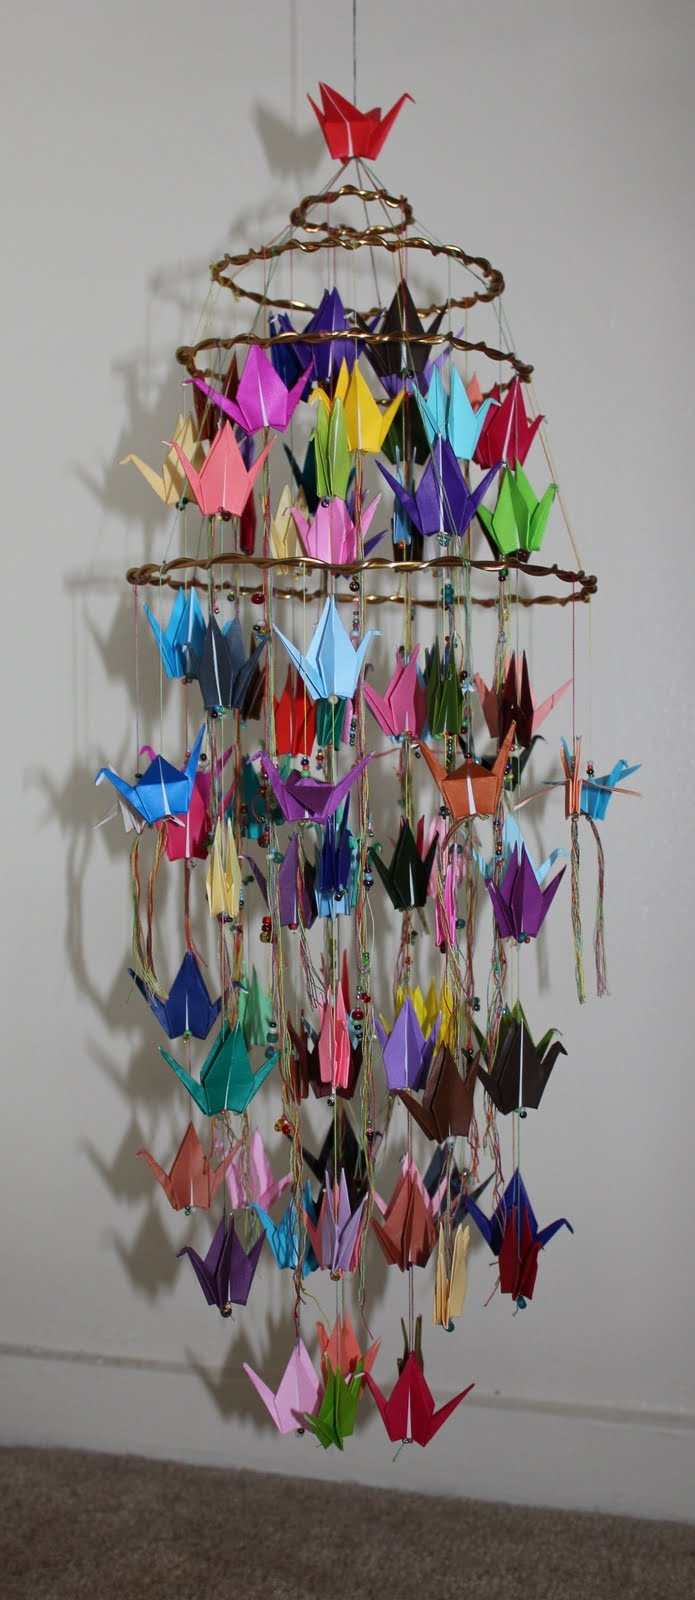 Origami crane crane origami craft ideas - Origami Crane Mobile 4th Make This As Collaboration Art And Give To Homeroom